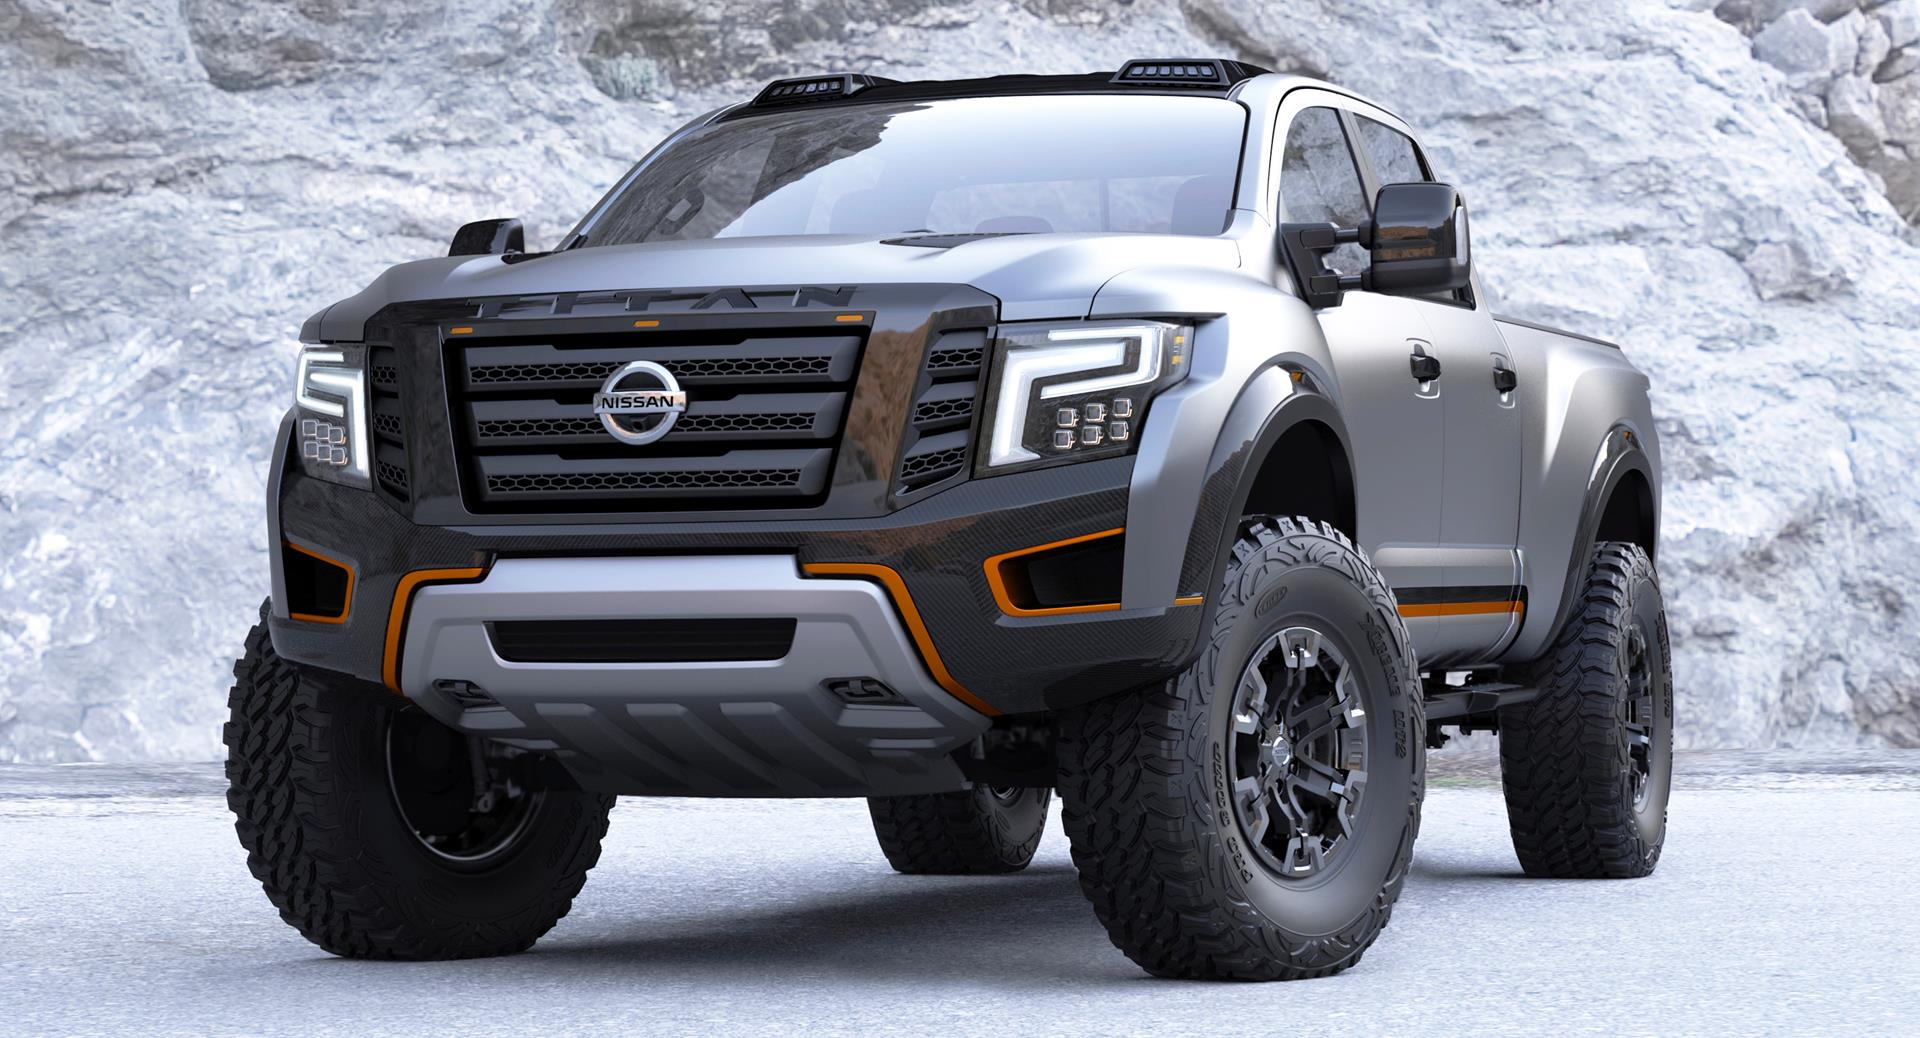 2016 Nissan Titan Warrior Concept News And Information Xtrail Offroad Modified